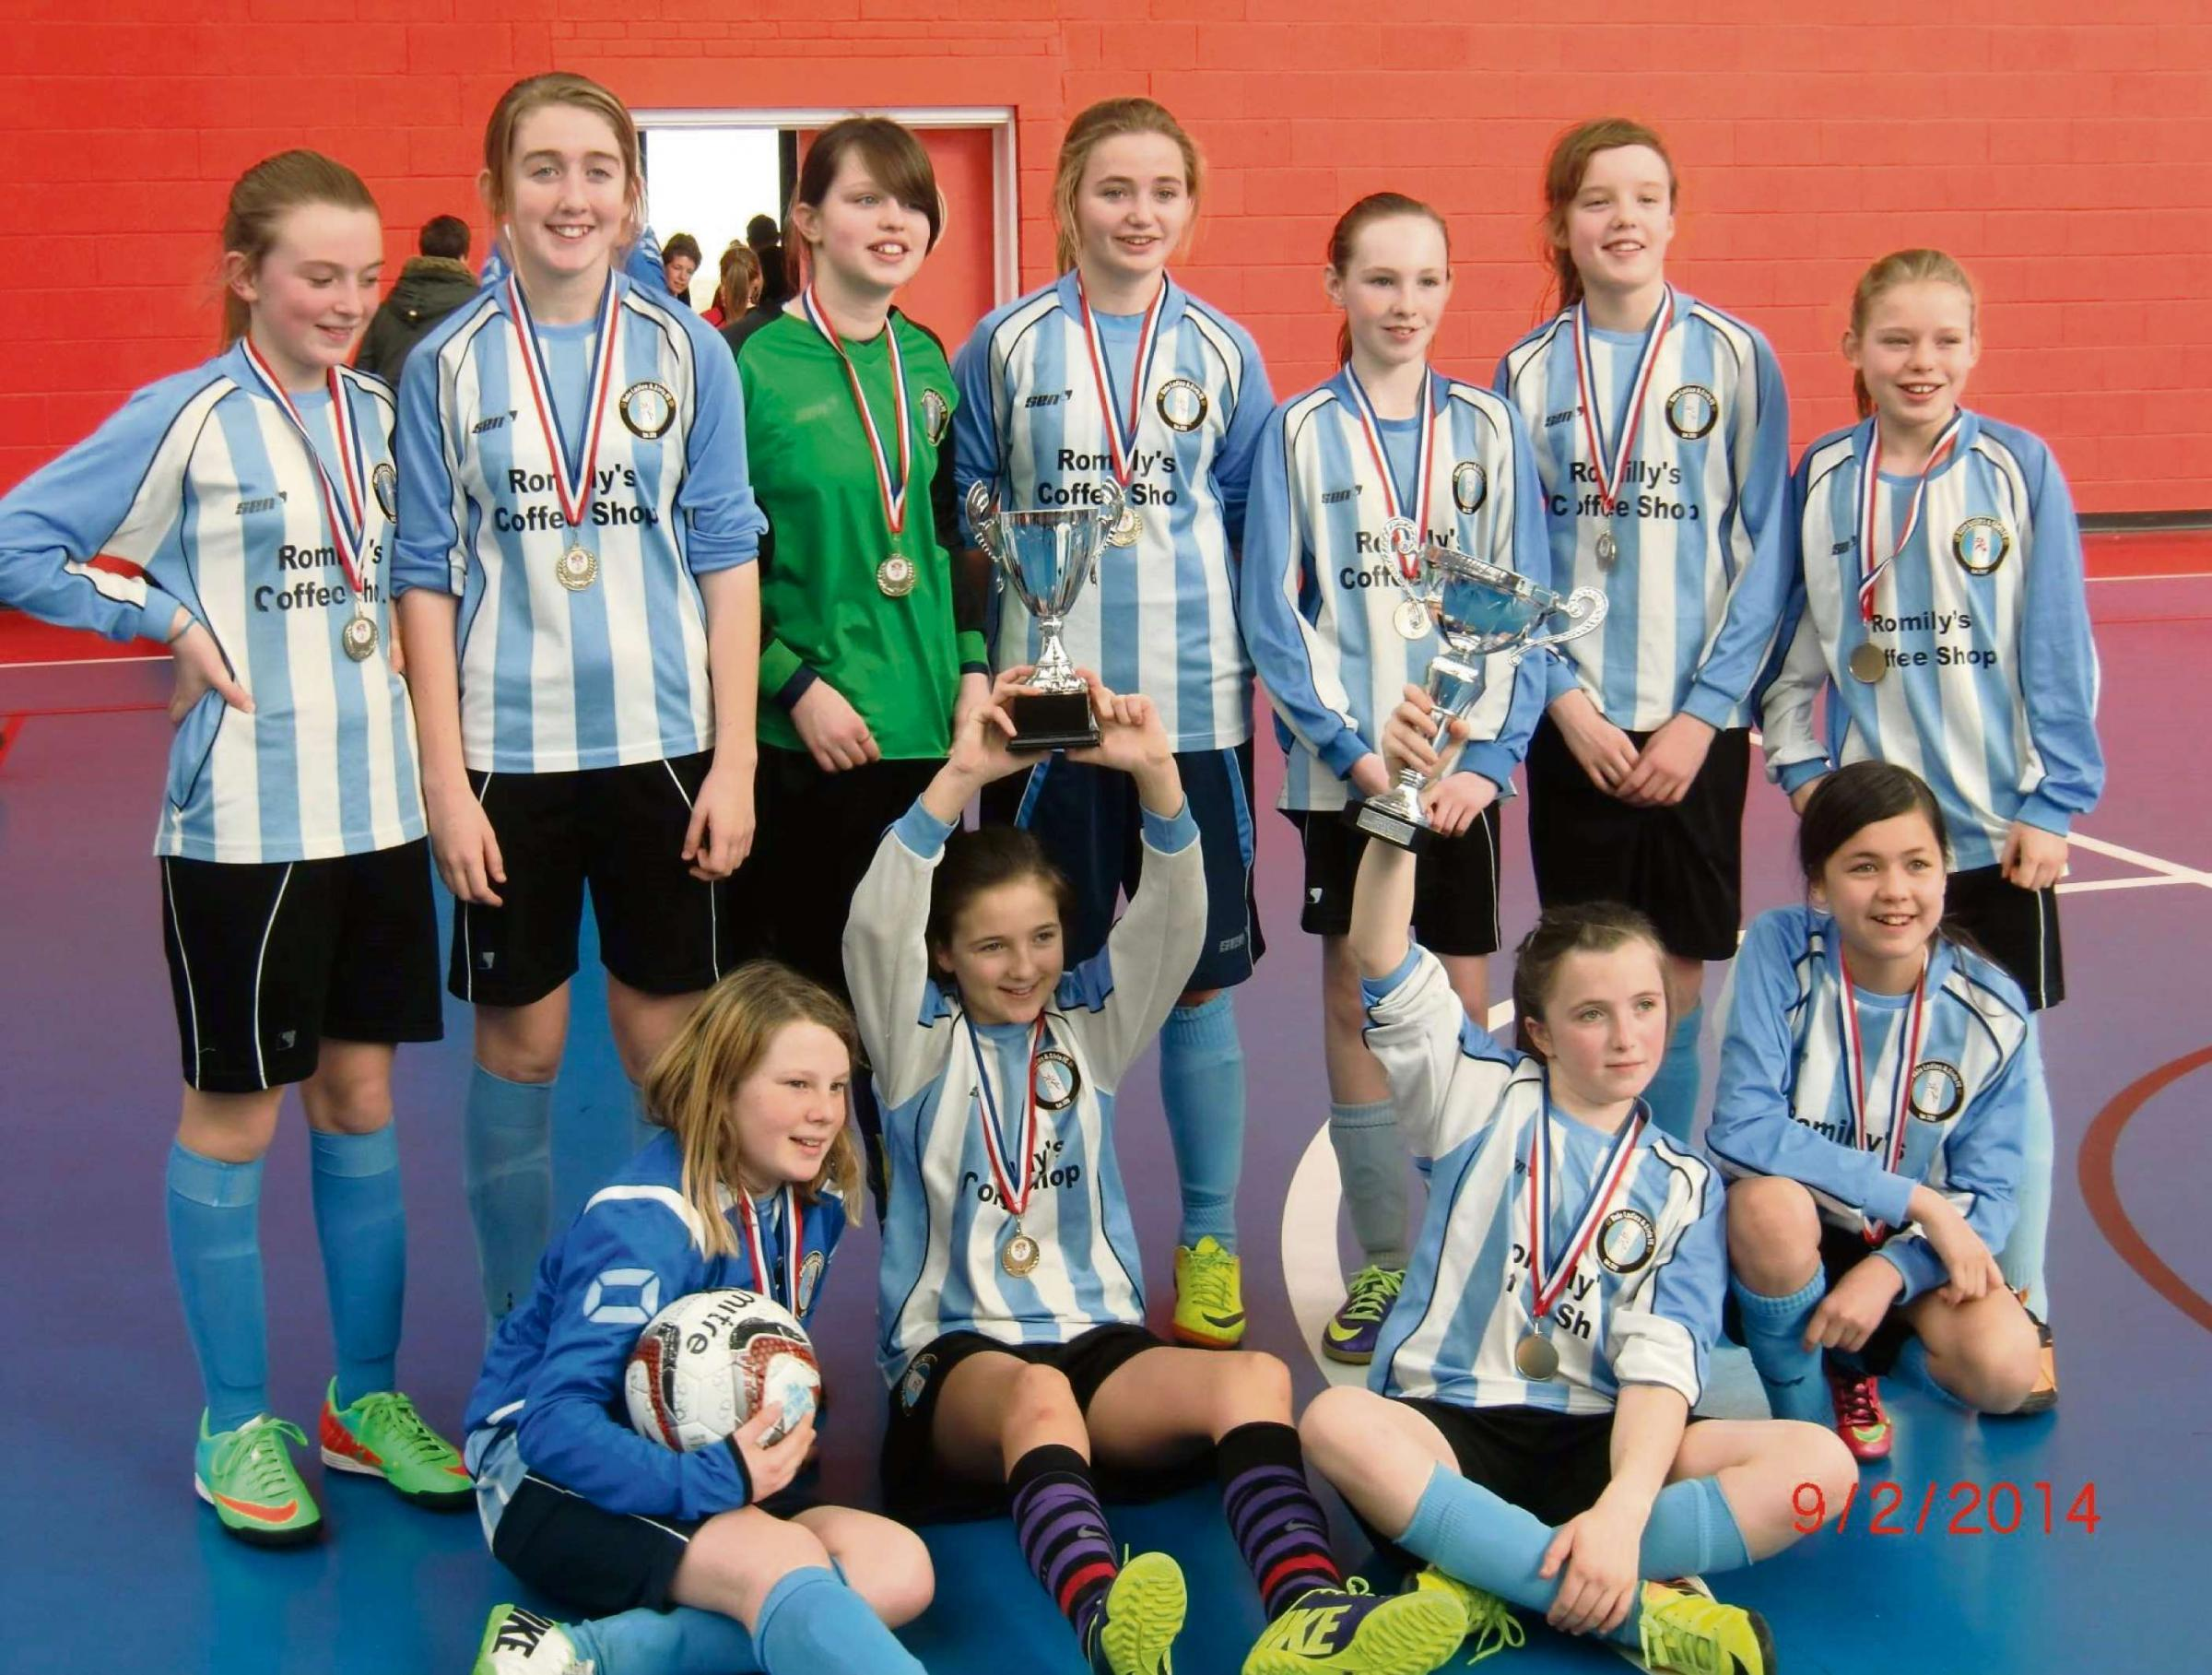 CUP WINNERS: In just their second season, an under-12 side has created a bit of history as the first Vale Ladies' & Girls' Football Club team to win a c